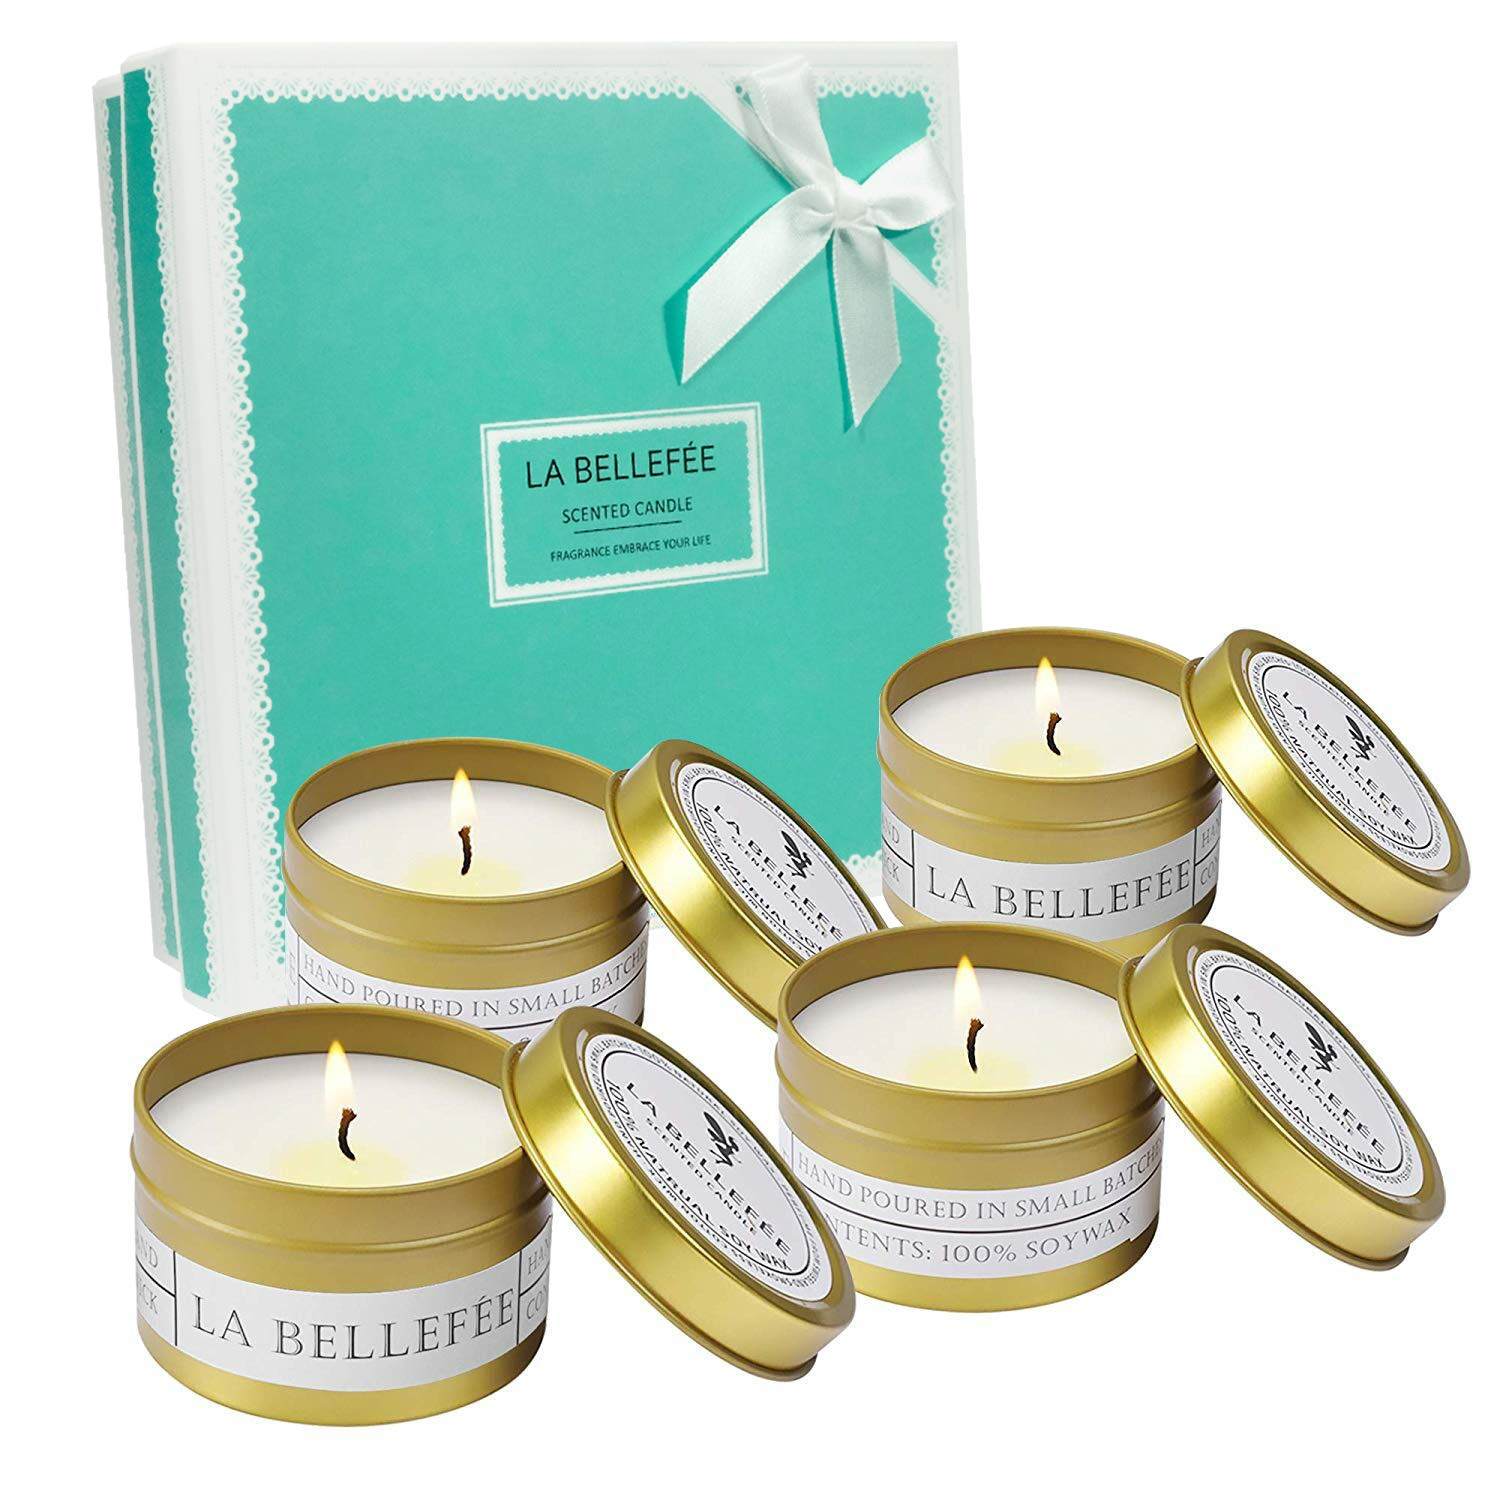 LA BELLEFÉE Scented Candle Soy Wax Travel Tin Aromatherapy Candles Gift Set for Wedding, Festival - Lemongrass Bergamot, Sea Salt Sage, French Lavender Vanilla, Mediterranean Amber - 4 Pack by LA BELLEFÉE